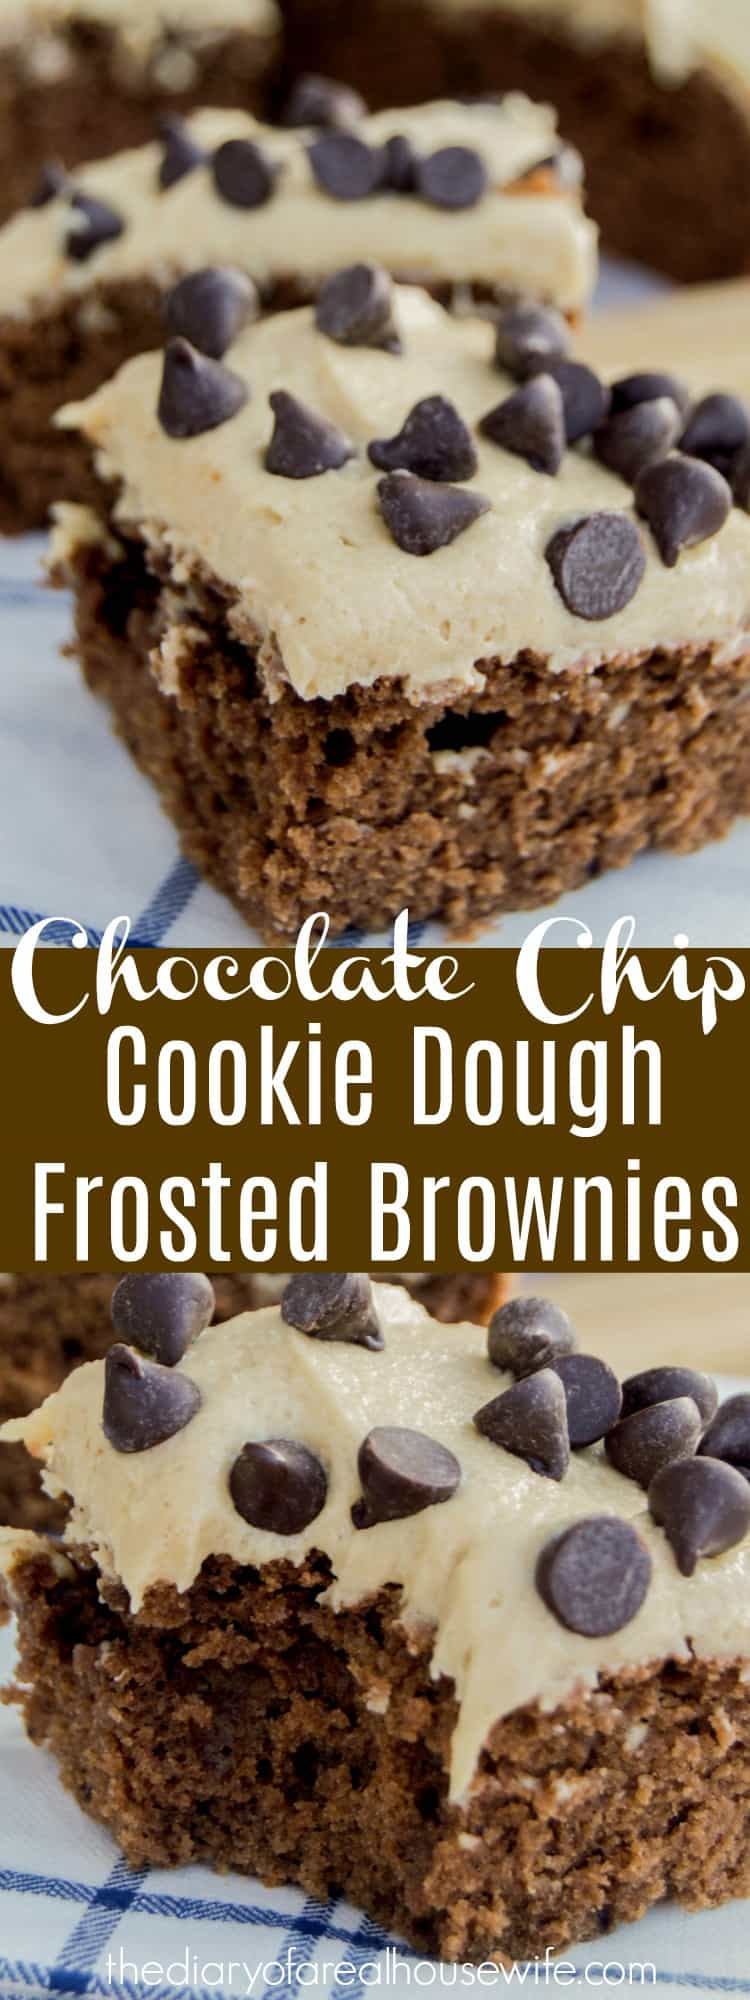 Chocolate Chip Cookie Dough Frosted Brownies